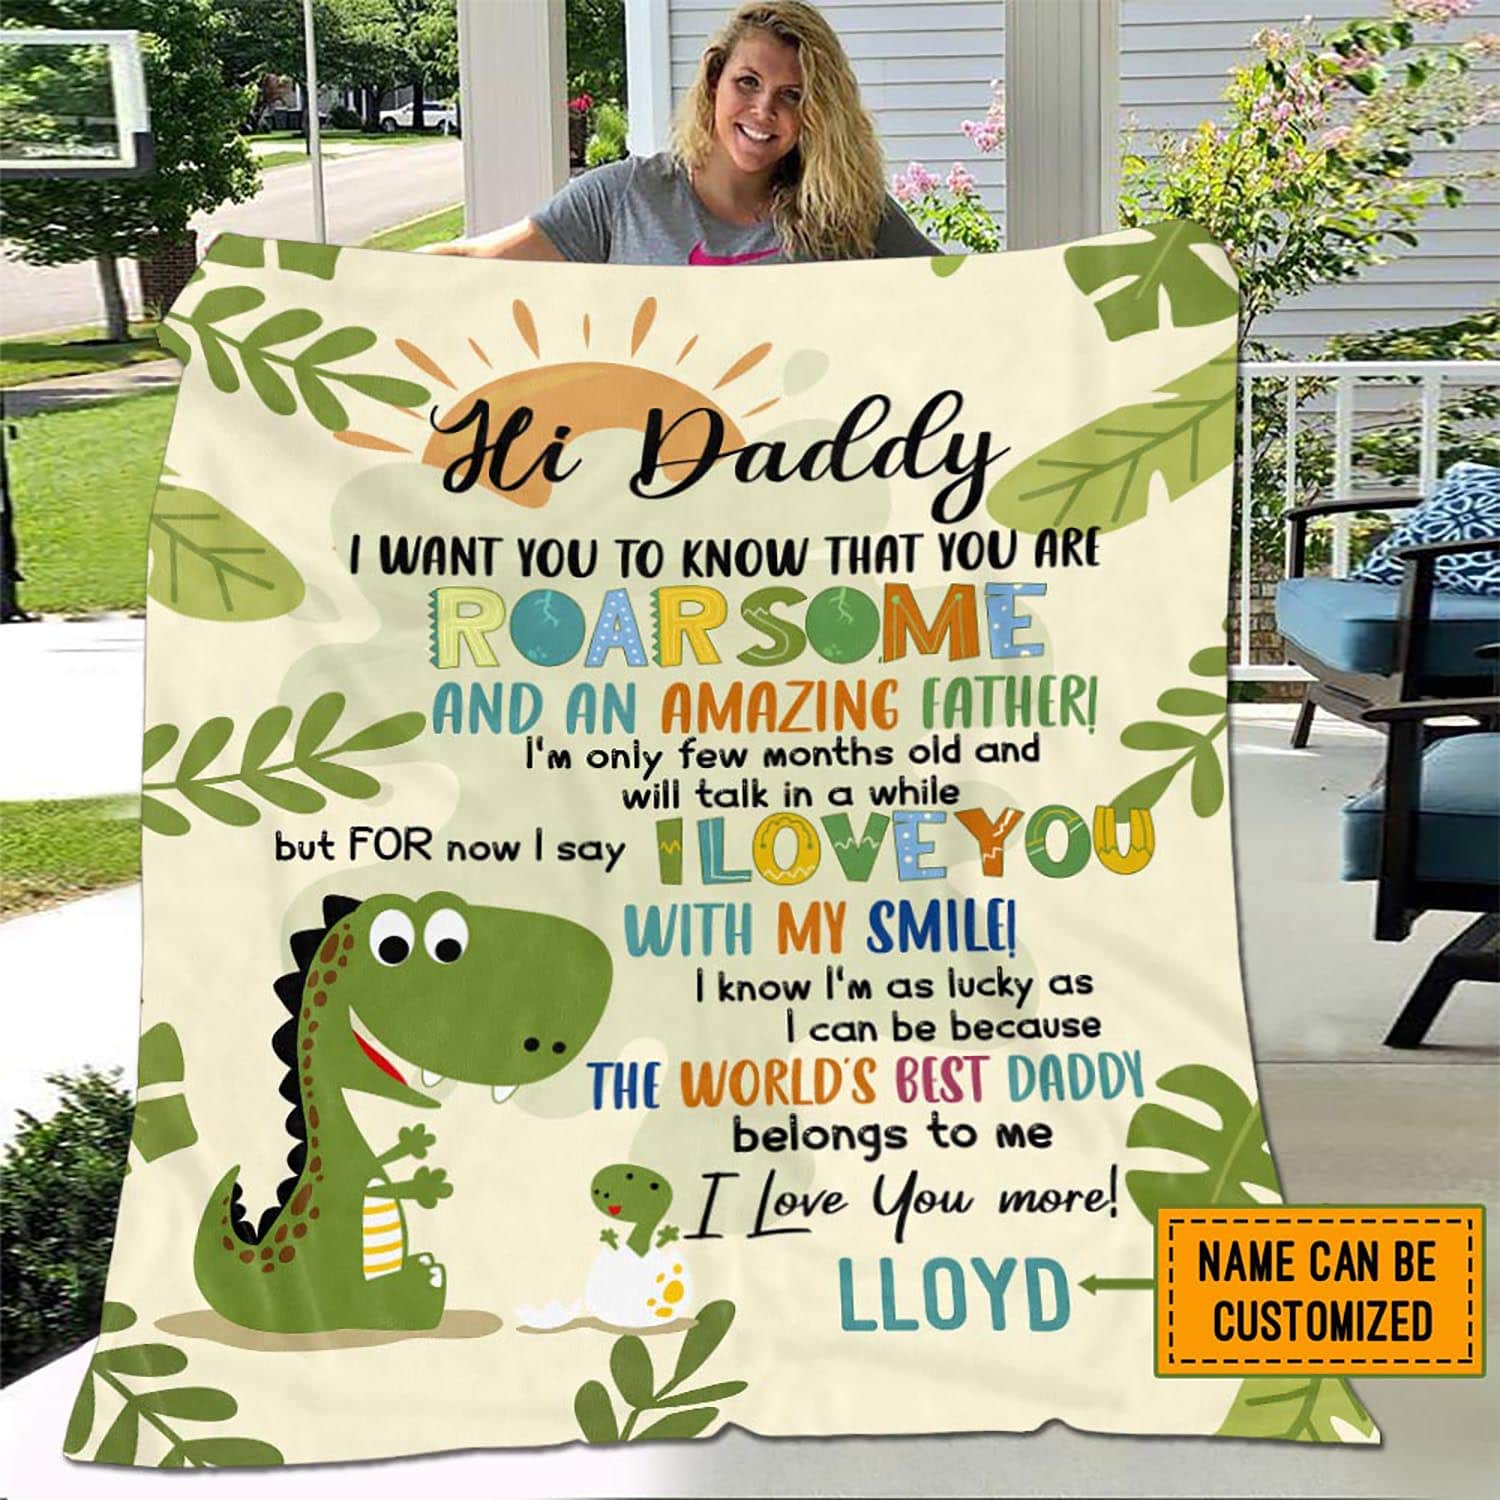 Personalized You Are Roarsome And An Amazing Father cute dinosaur Fleece Blanket